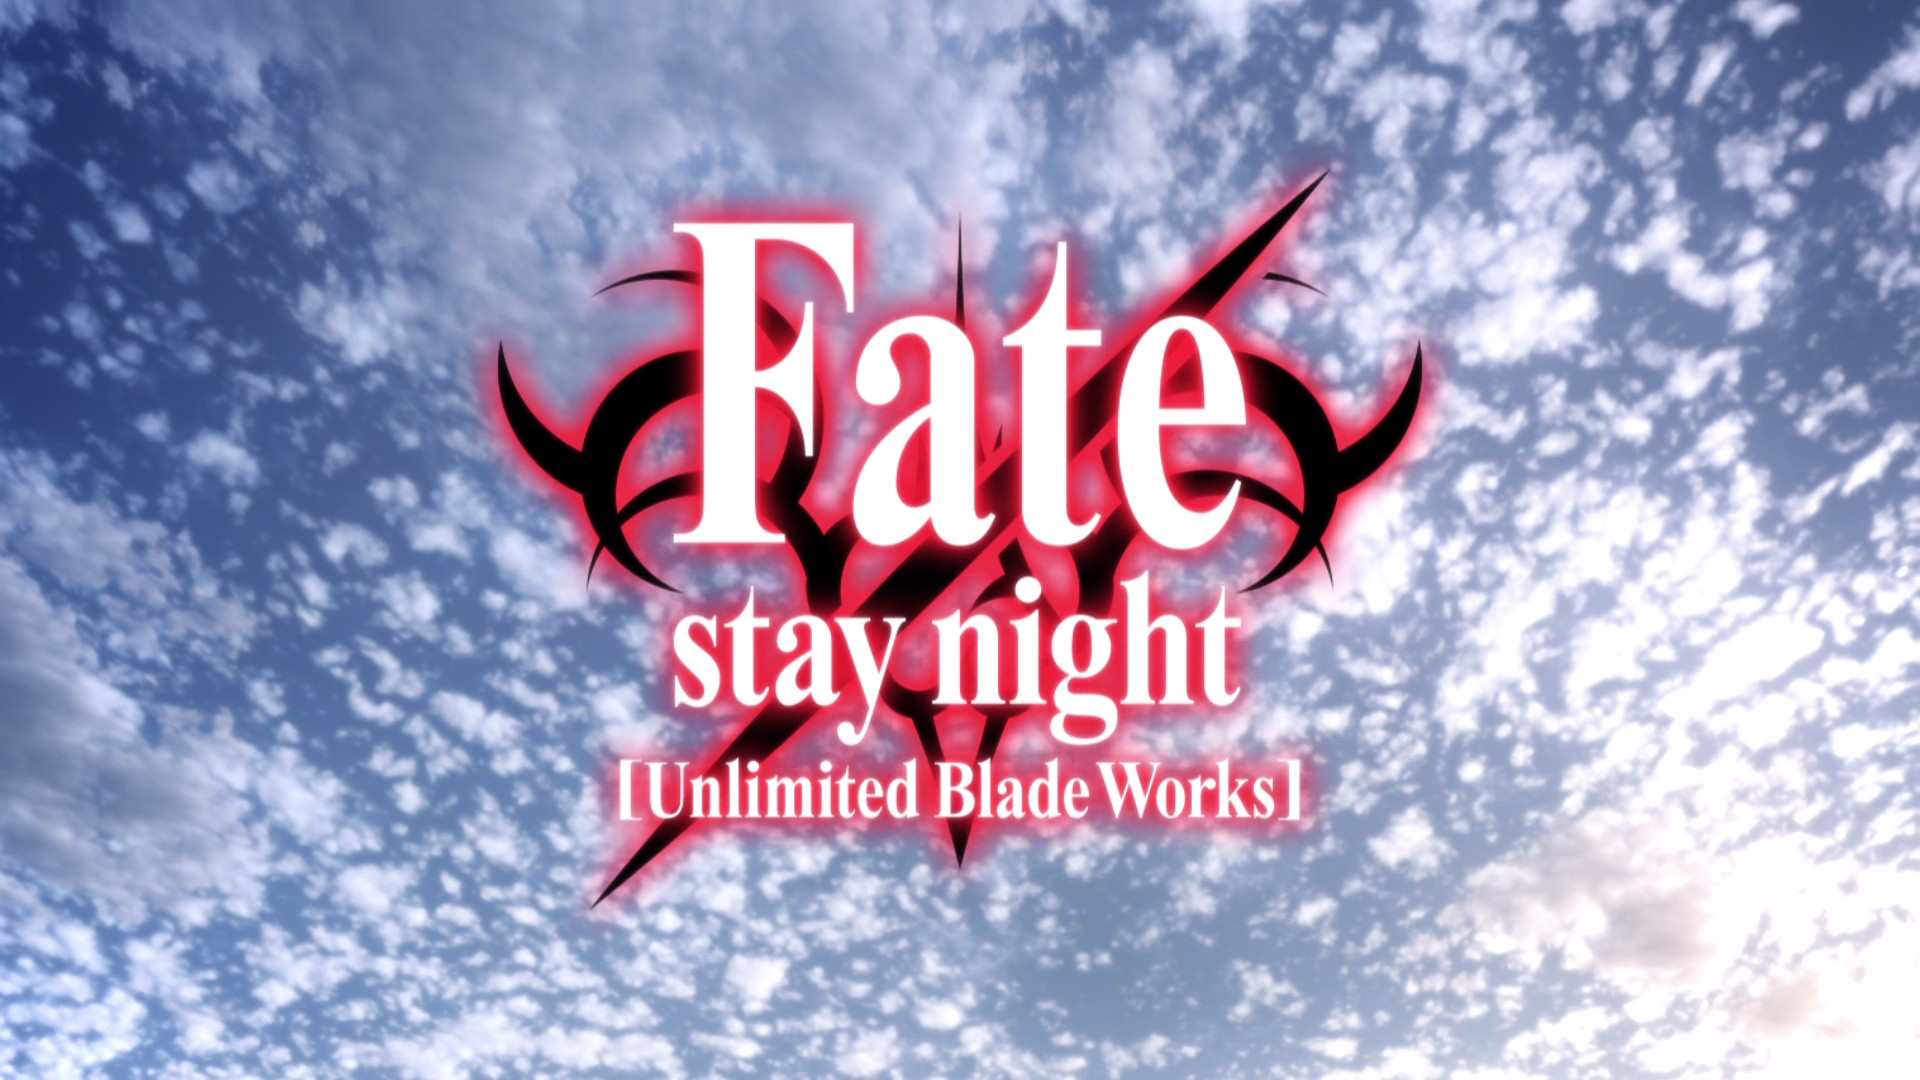 Fate/stay night 命运之夜 UBW Unlimited Blade Works